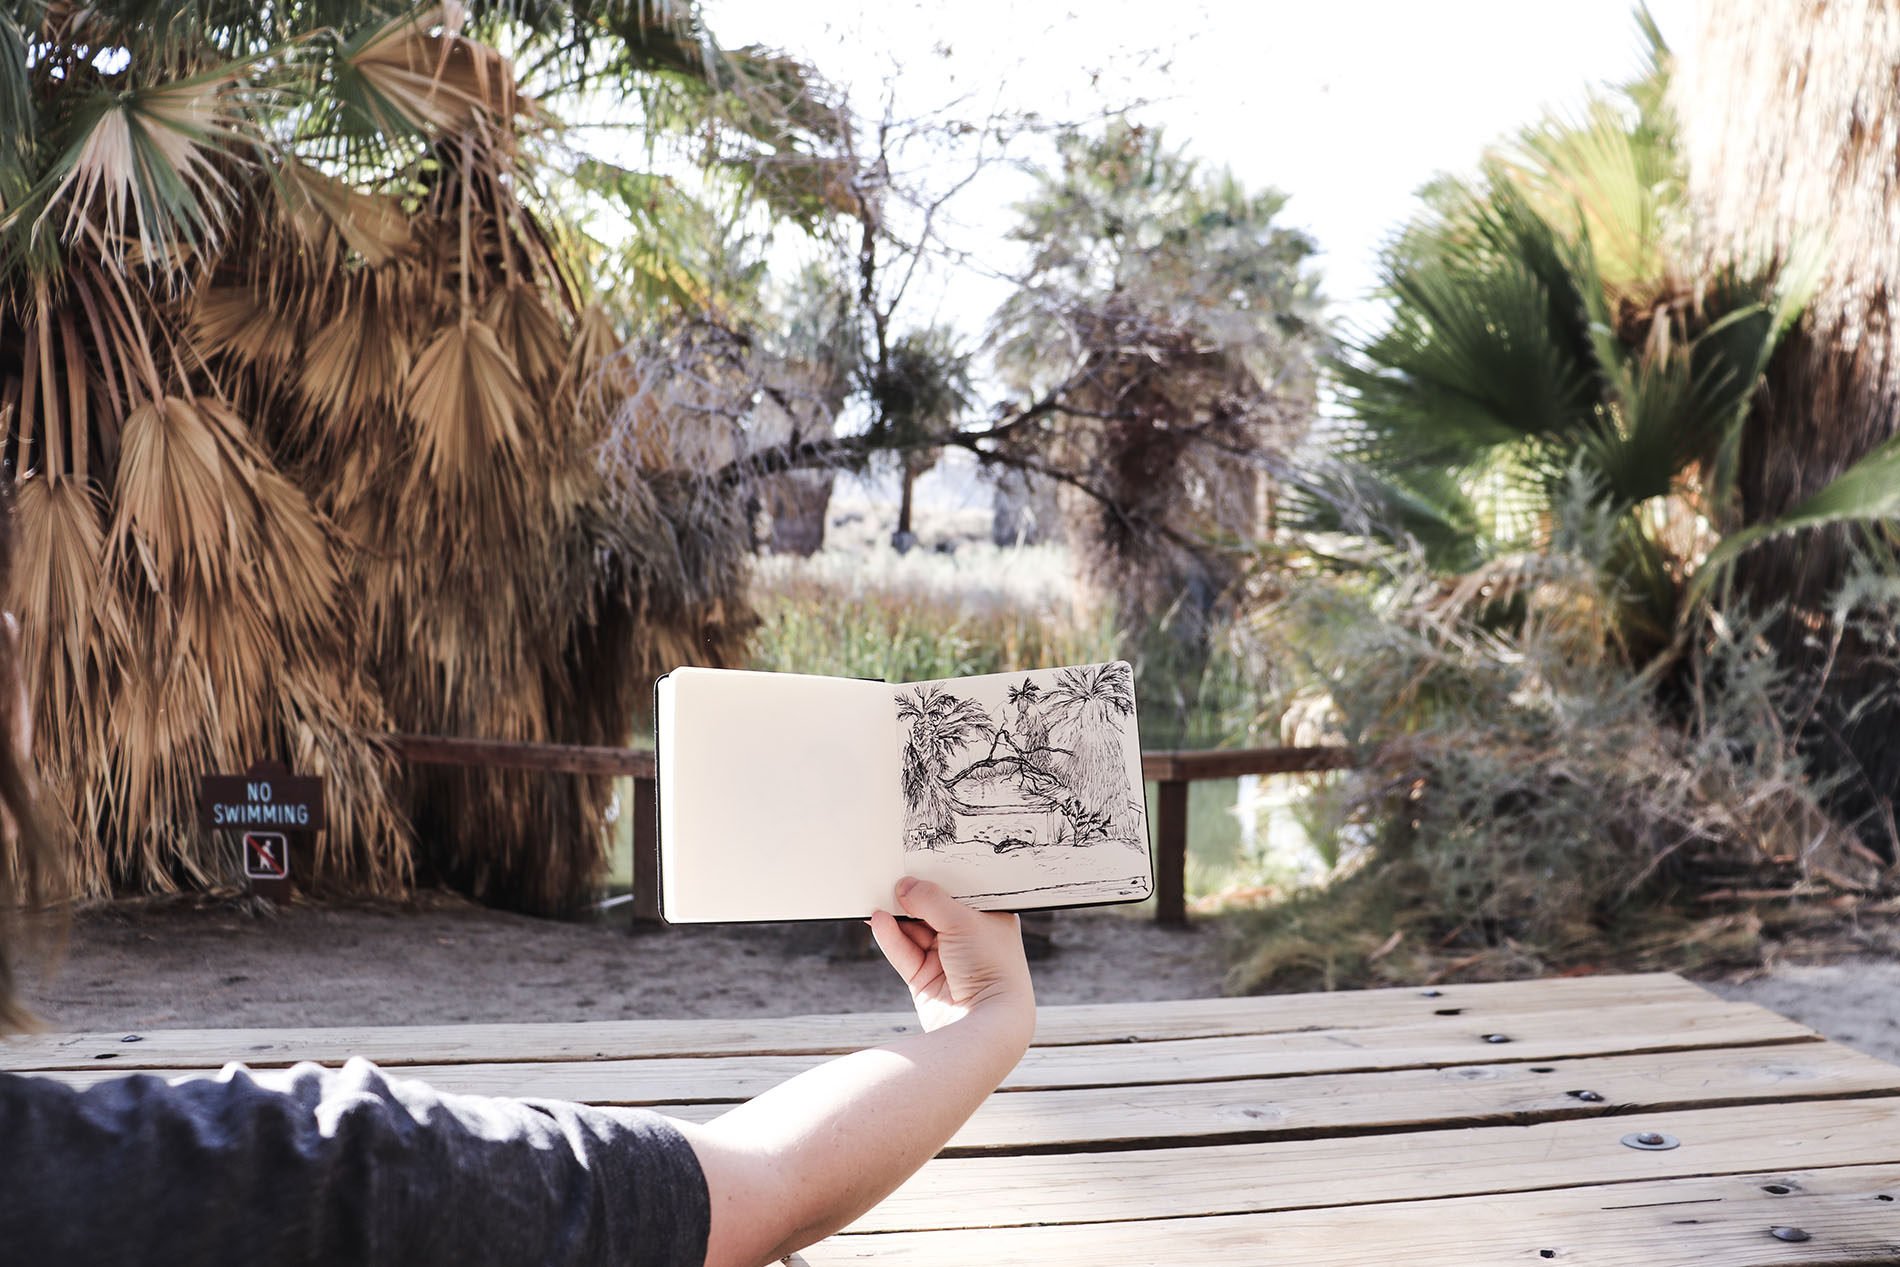 Sketching outside in Florida.